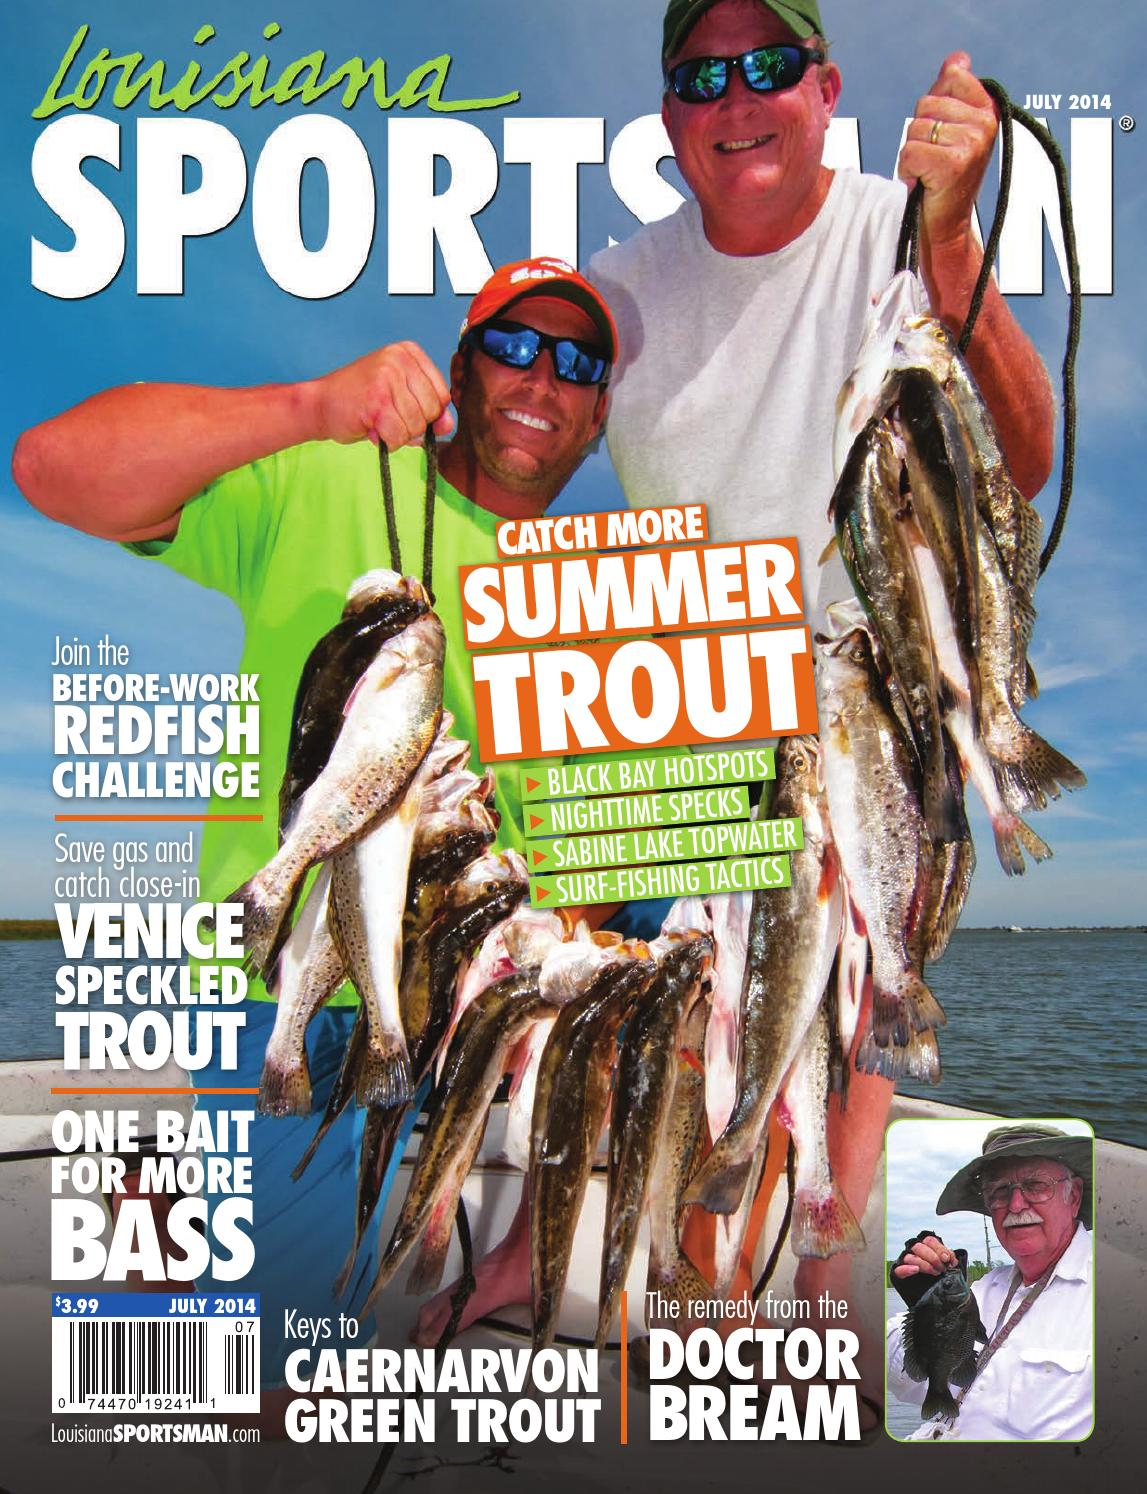 Louisiana Sportsman Magazine - July 2014 by Louisiana